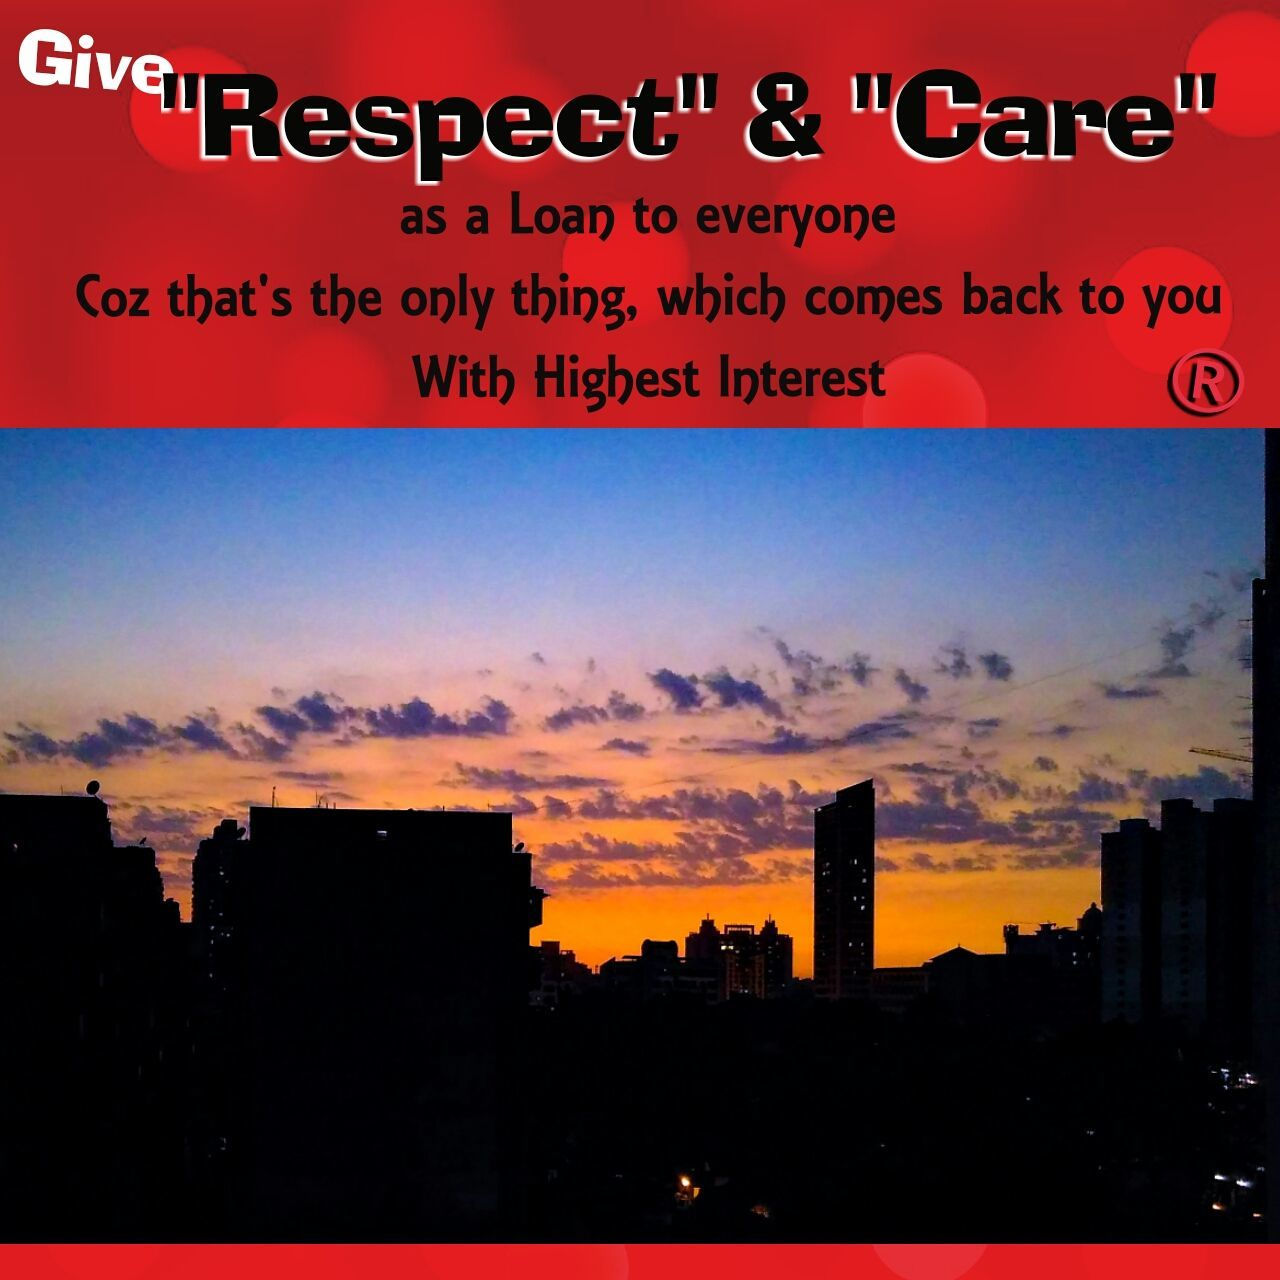 Respect & Care Give Care & Respect Quote mobile pics Mobilephotography mobilephoto Mobile_photographer Quote Mobile Quotes mobile editing Daily Quotes Sunset Silhouettes Sunset And Clouds  Sunset_collection